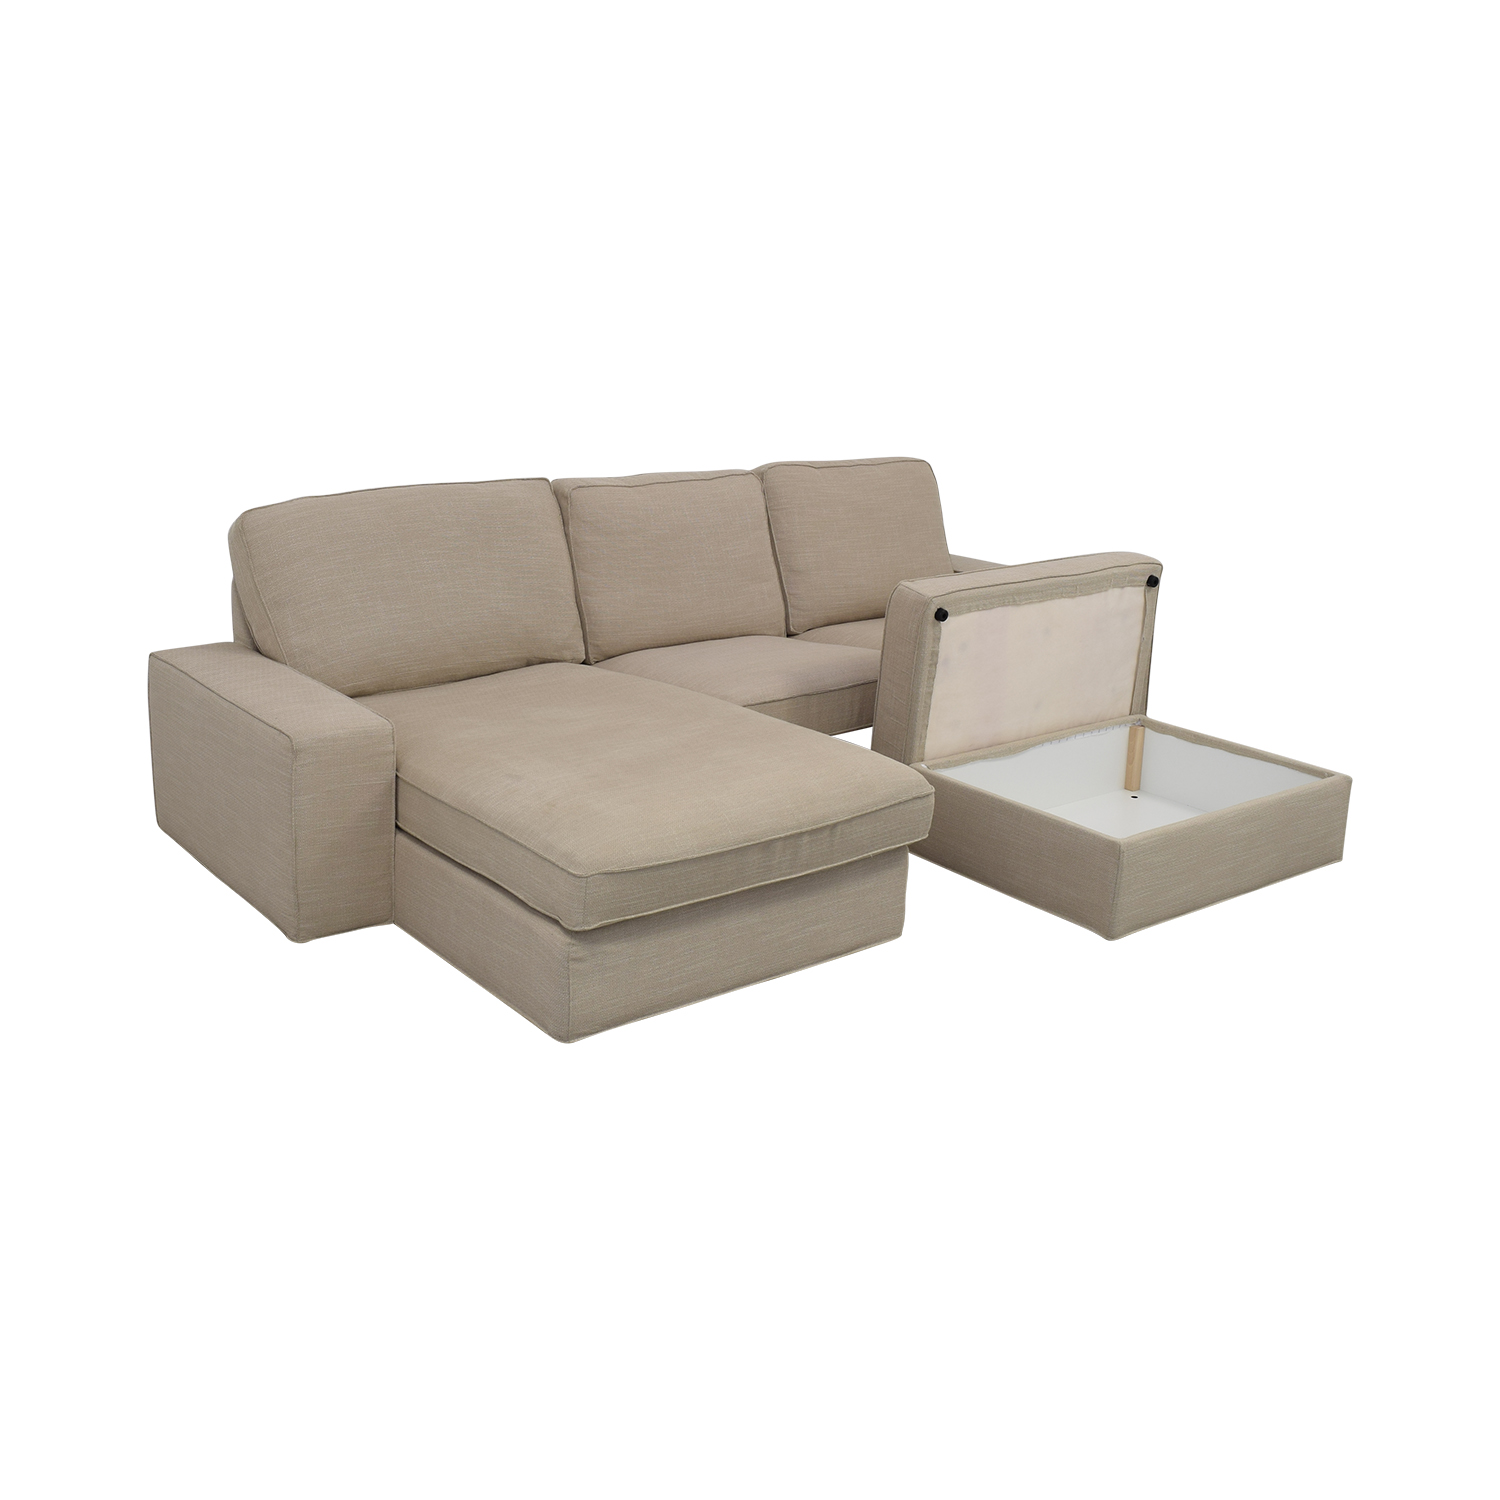 IKEA IKEA KIVIK Chaise Sofa with Ottoman discount